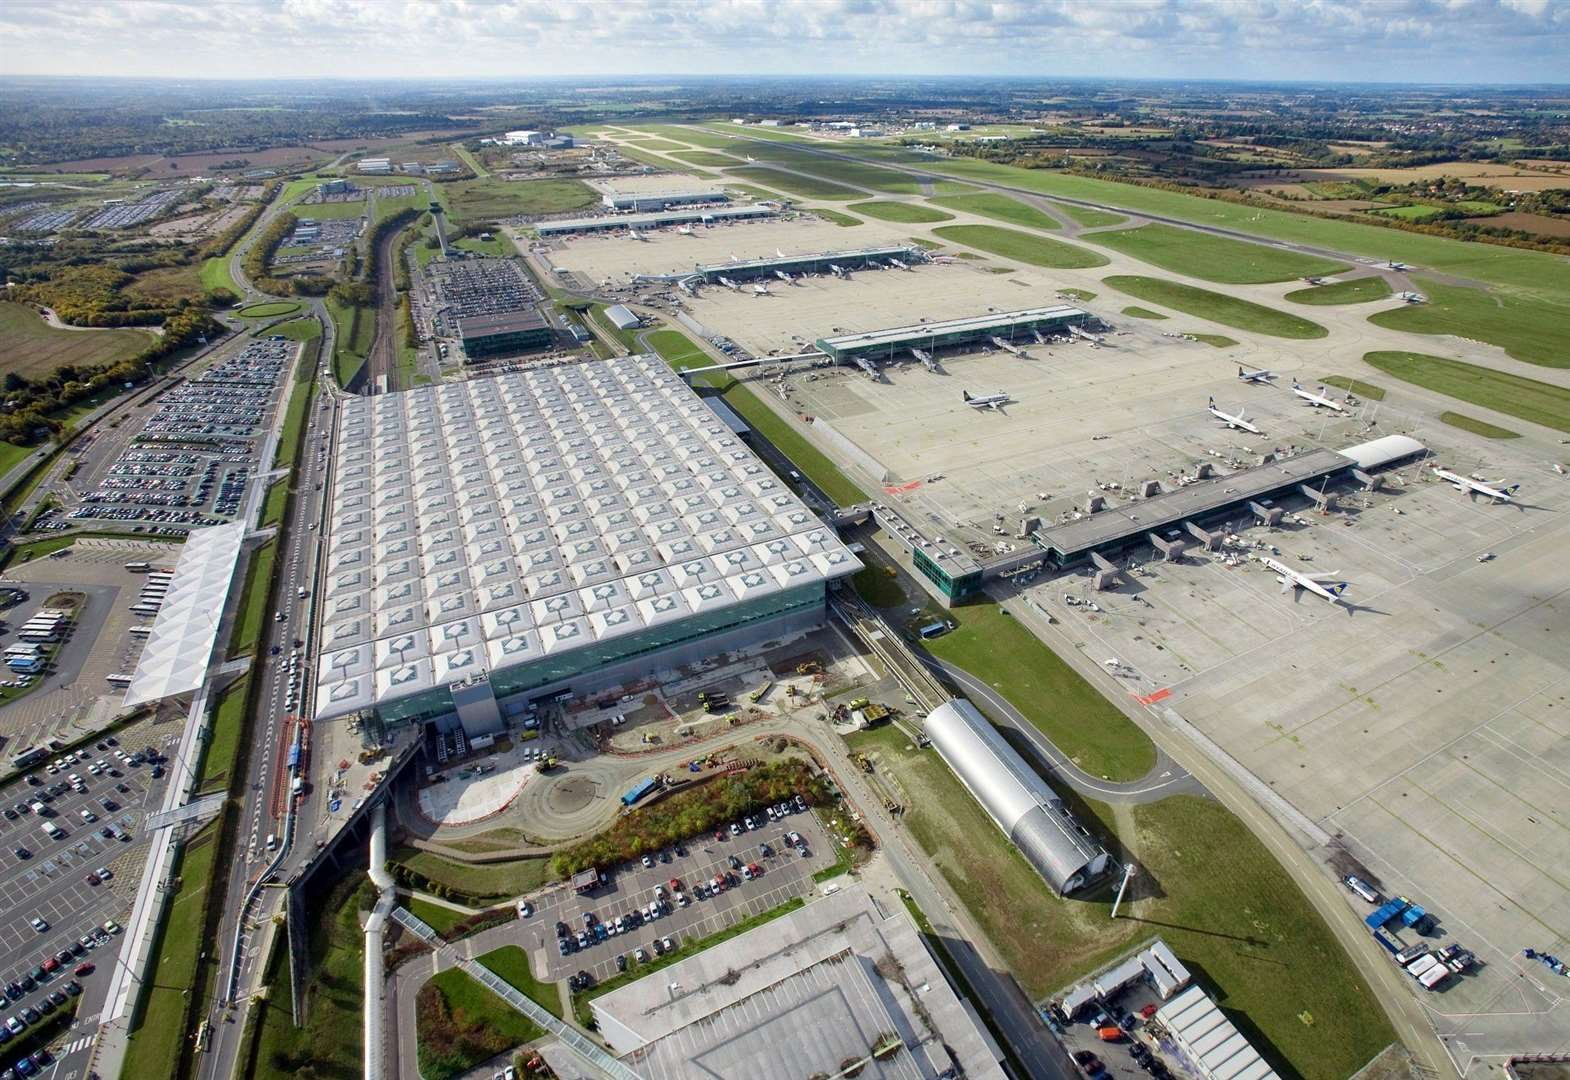 'Affluent and retired' councillors under fire for Stansted Airport planning permission delay